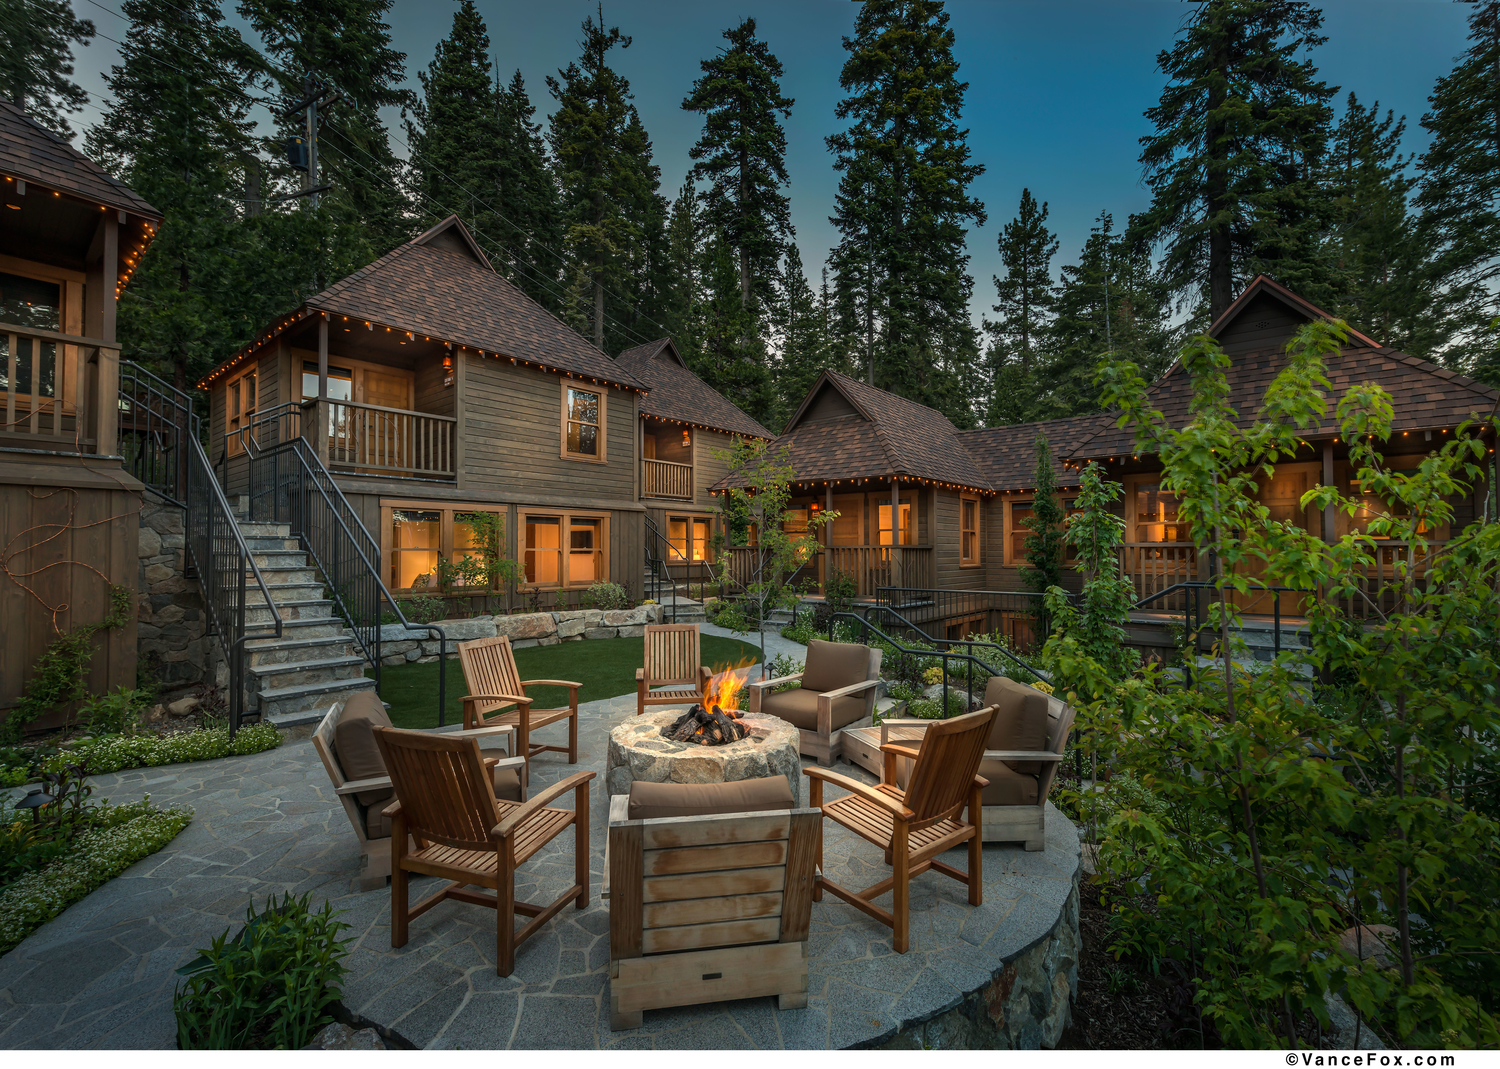 lake are the local restless rp residents tahoe south vacationers bee cheap in cabins over news sacramento